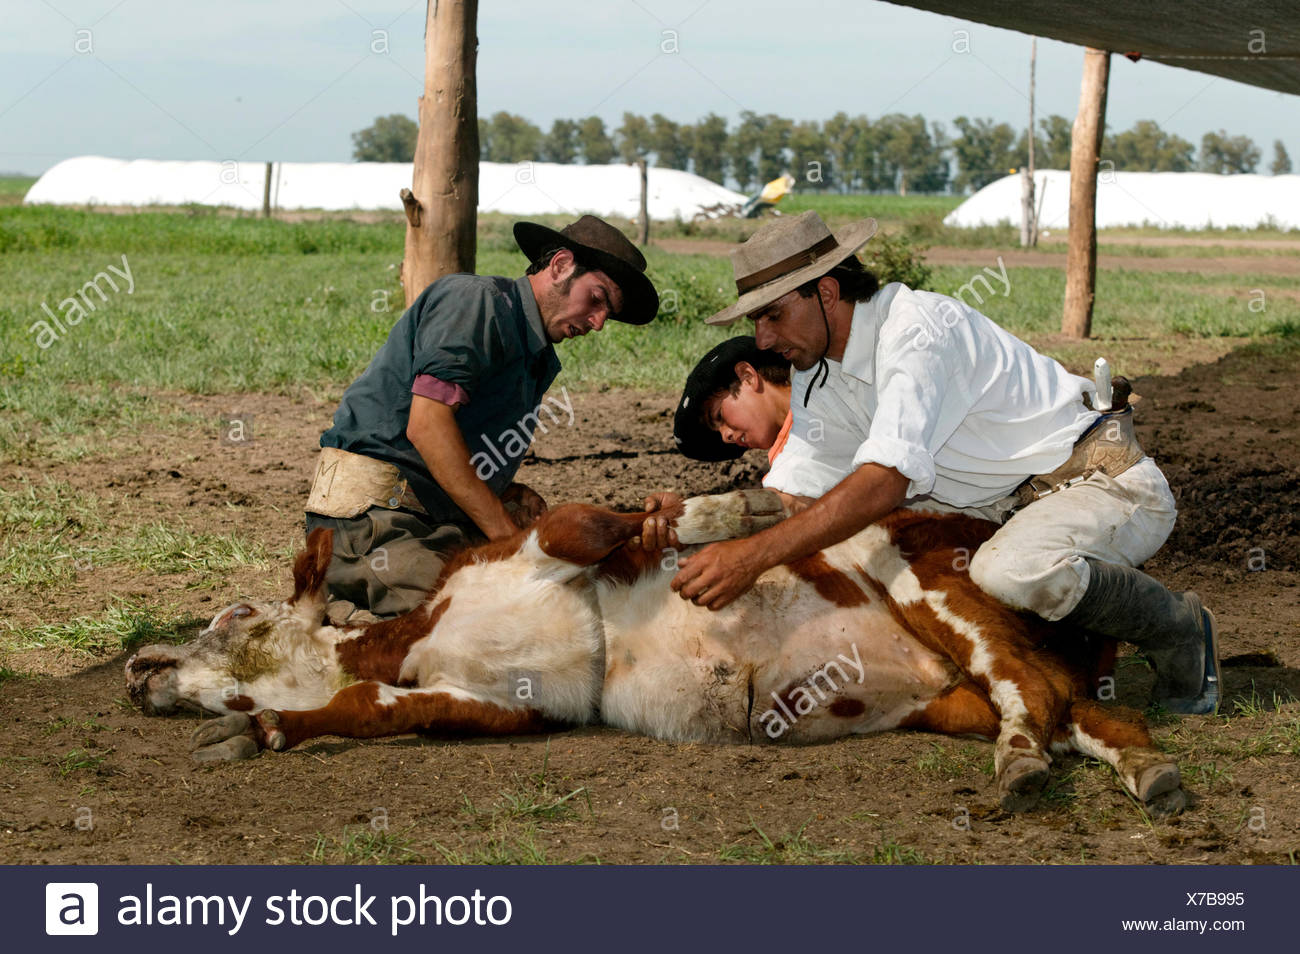 Gauchos with caught cattle, Estancia San Isidro del Llano towards Carmen Casares, Buenos Aires province, Argentina - Stock Image